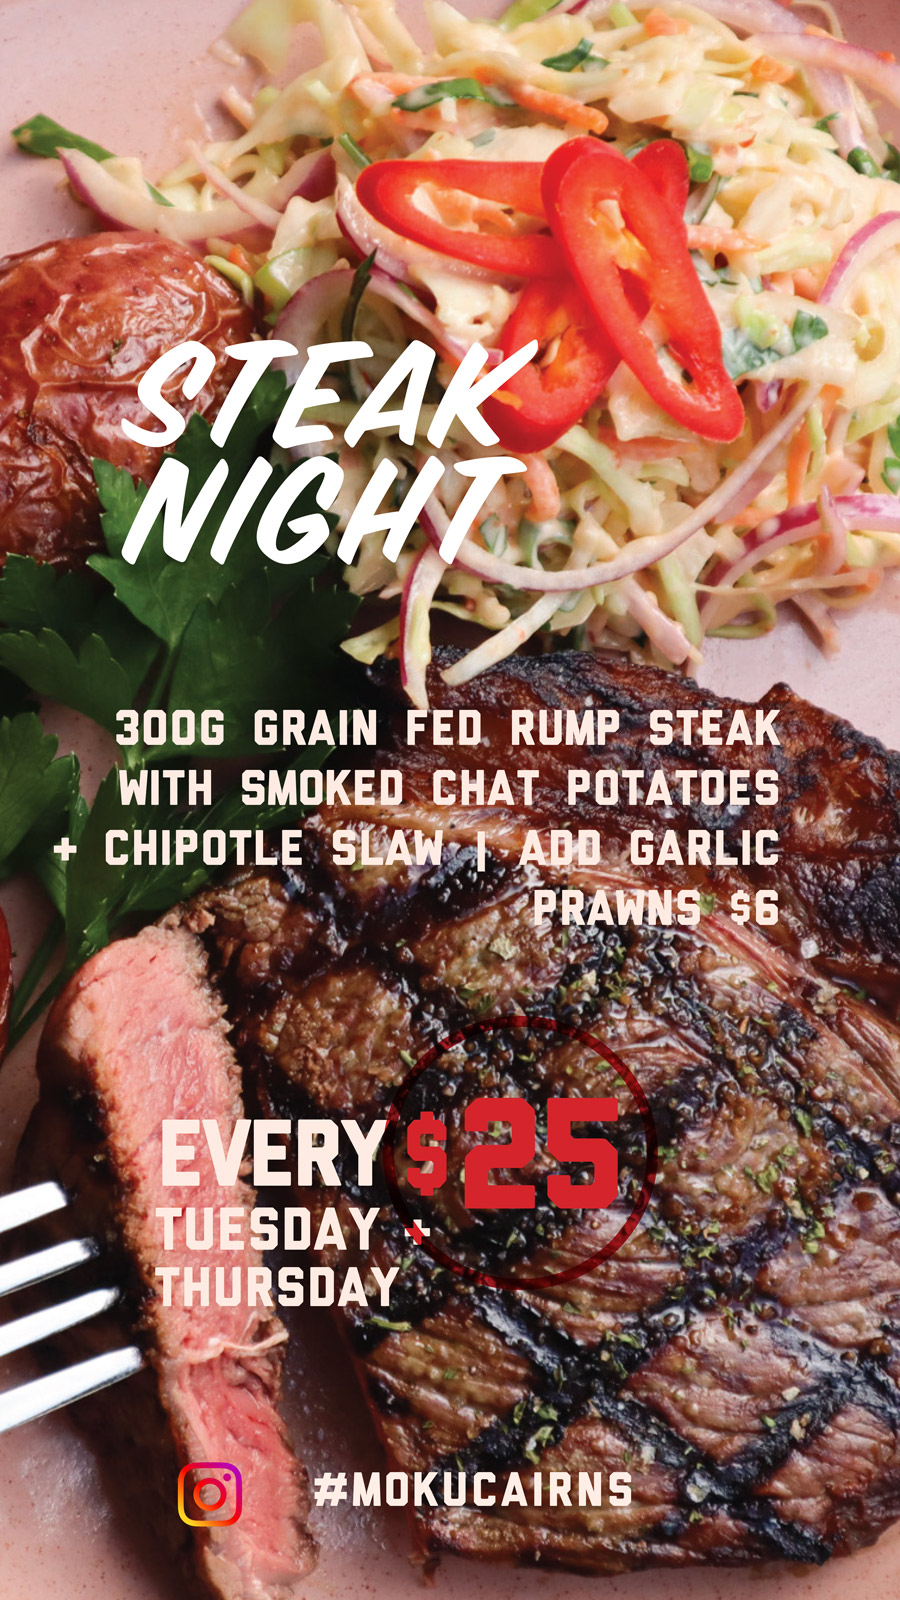 moku bar and grill weekly specials tuesday & thursday steak night novotel cairns